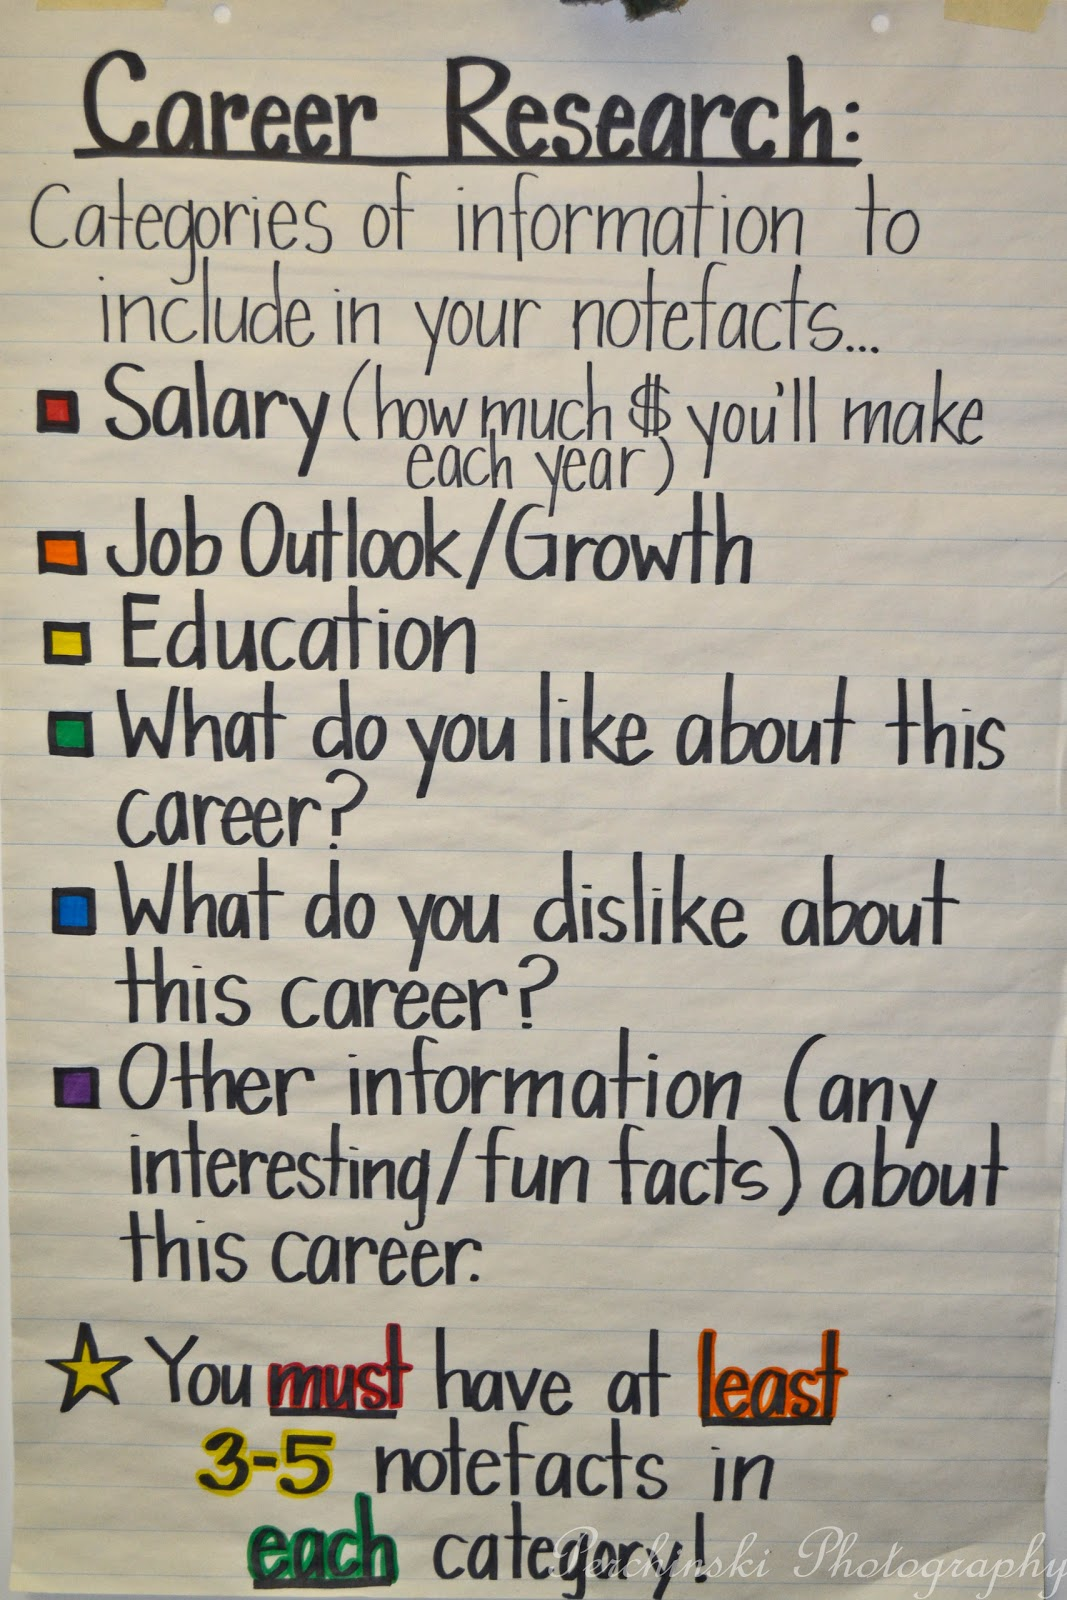 ms lyons th grade blog career research projects we will be finishing up collecting notefacts for our career research projects this week remember you need 3 5 notefacts for each category